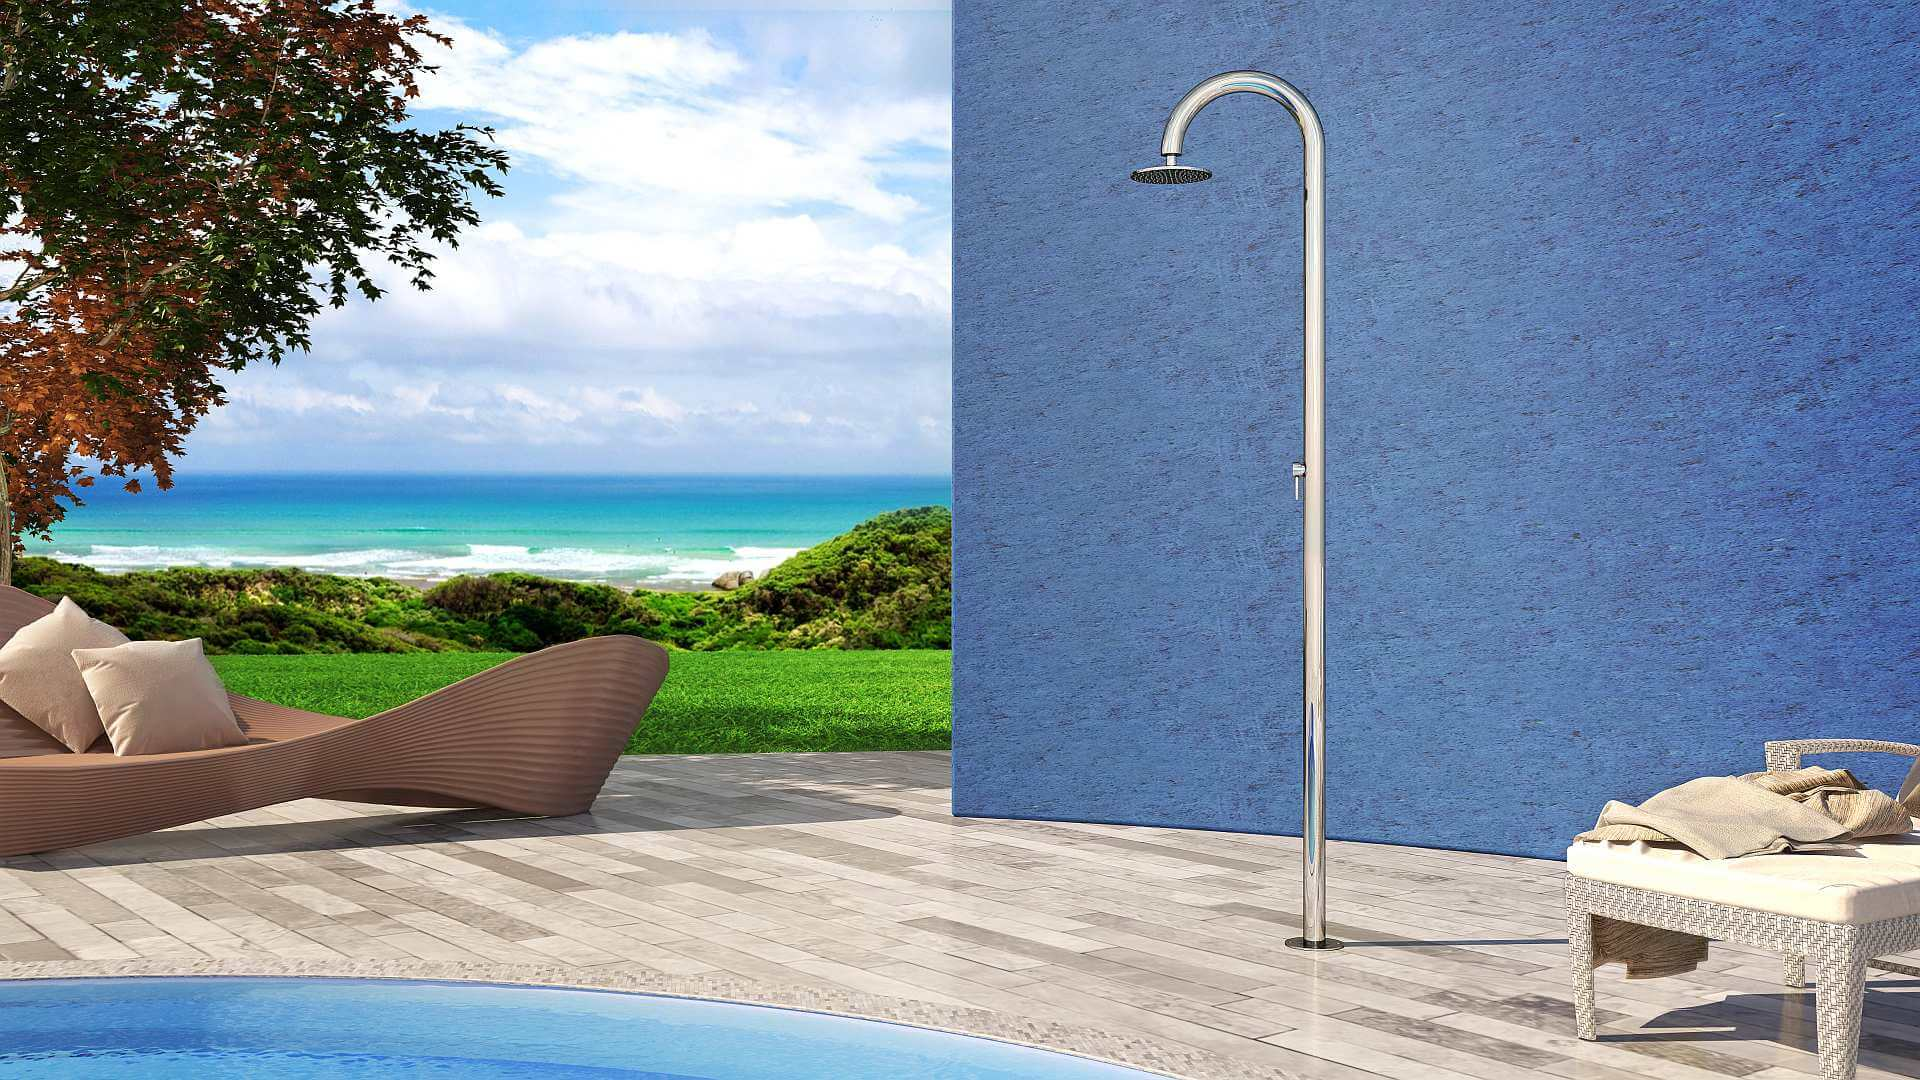 Picture Outdoor shower, pool, garden - Sole 60 Inoxstyle